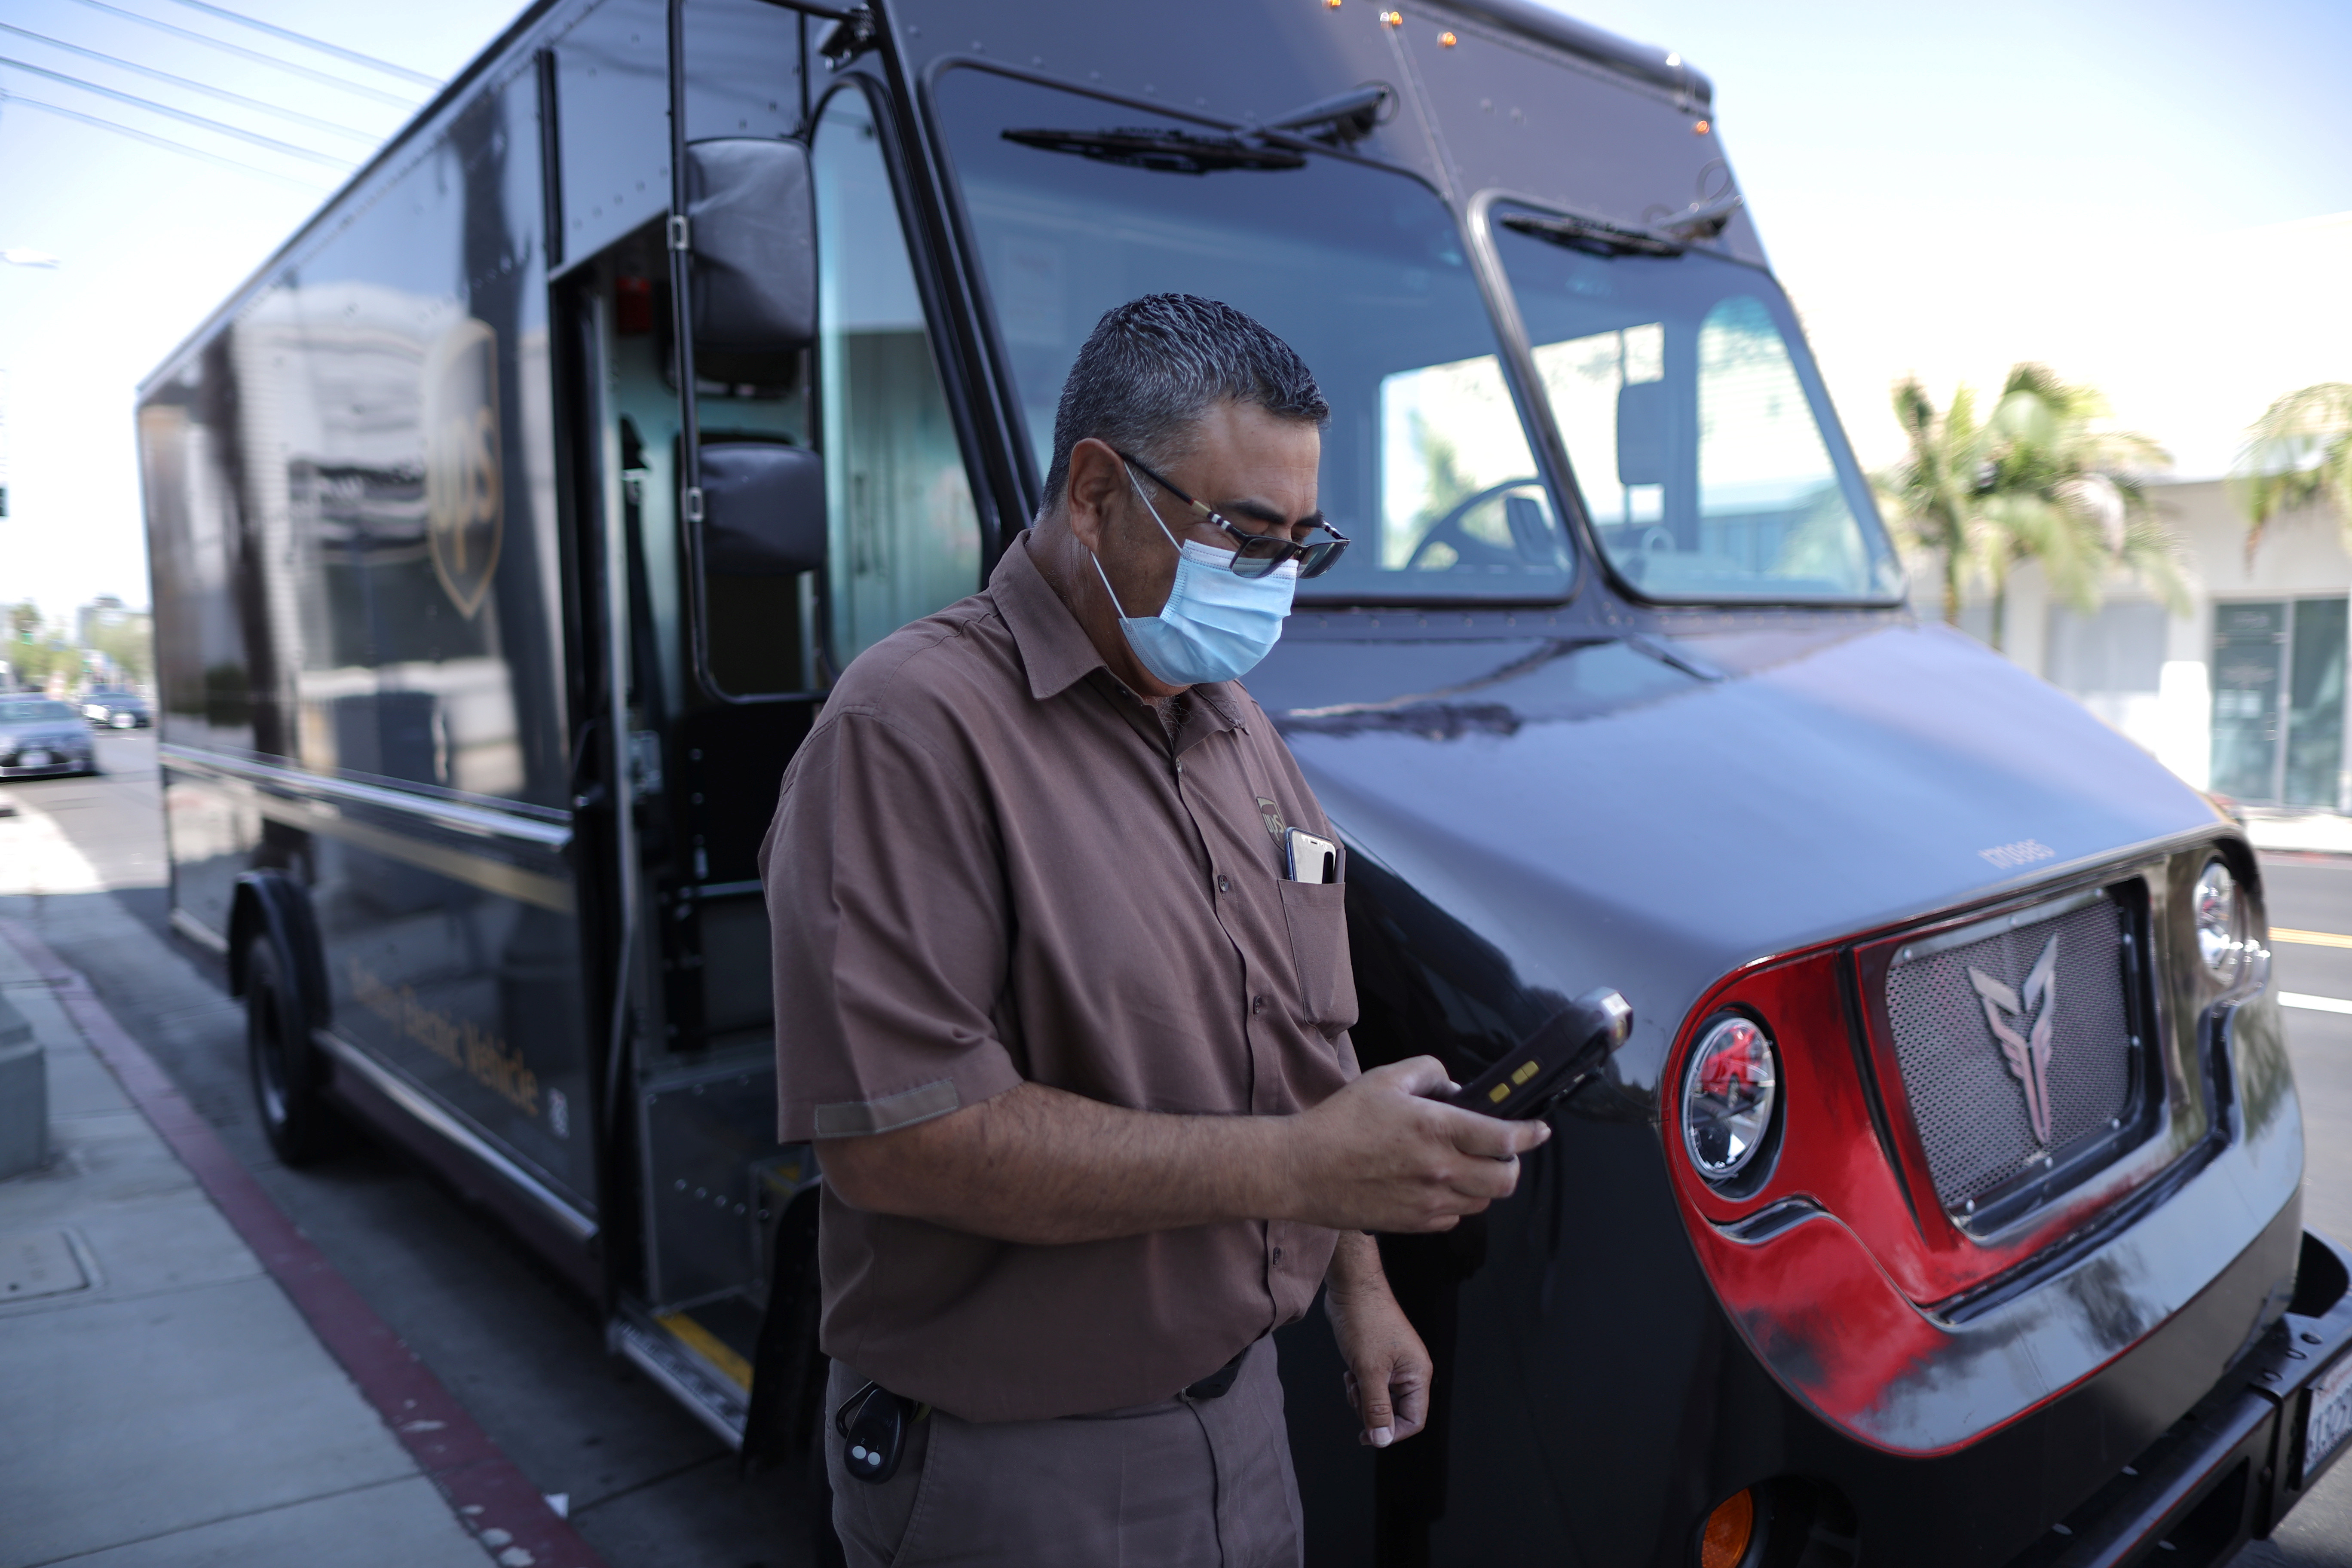 UPS Driver Gilbert Lopez gets out of an electric UPS truck, amid the global outbreak of the coronavirus disease (COVID-19), in Los Angeles, California, U.S., September 1, 2020.  Picture taken September 1, 2020. REUTERS/Lucy Nicholson - RC2YUI99ZE90